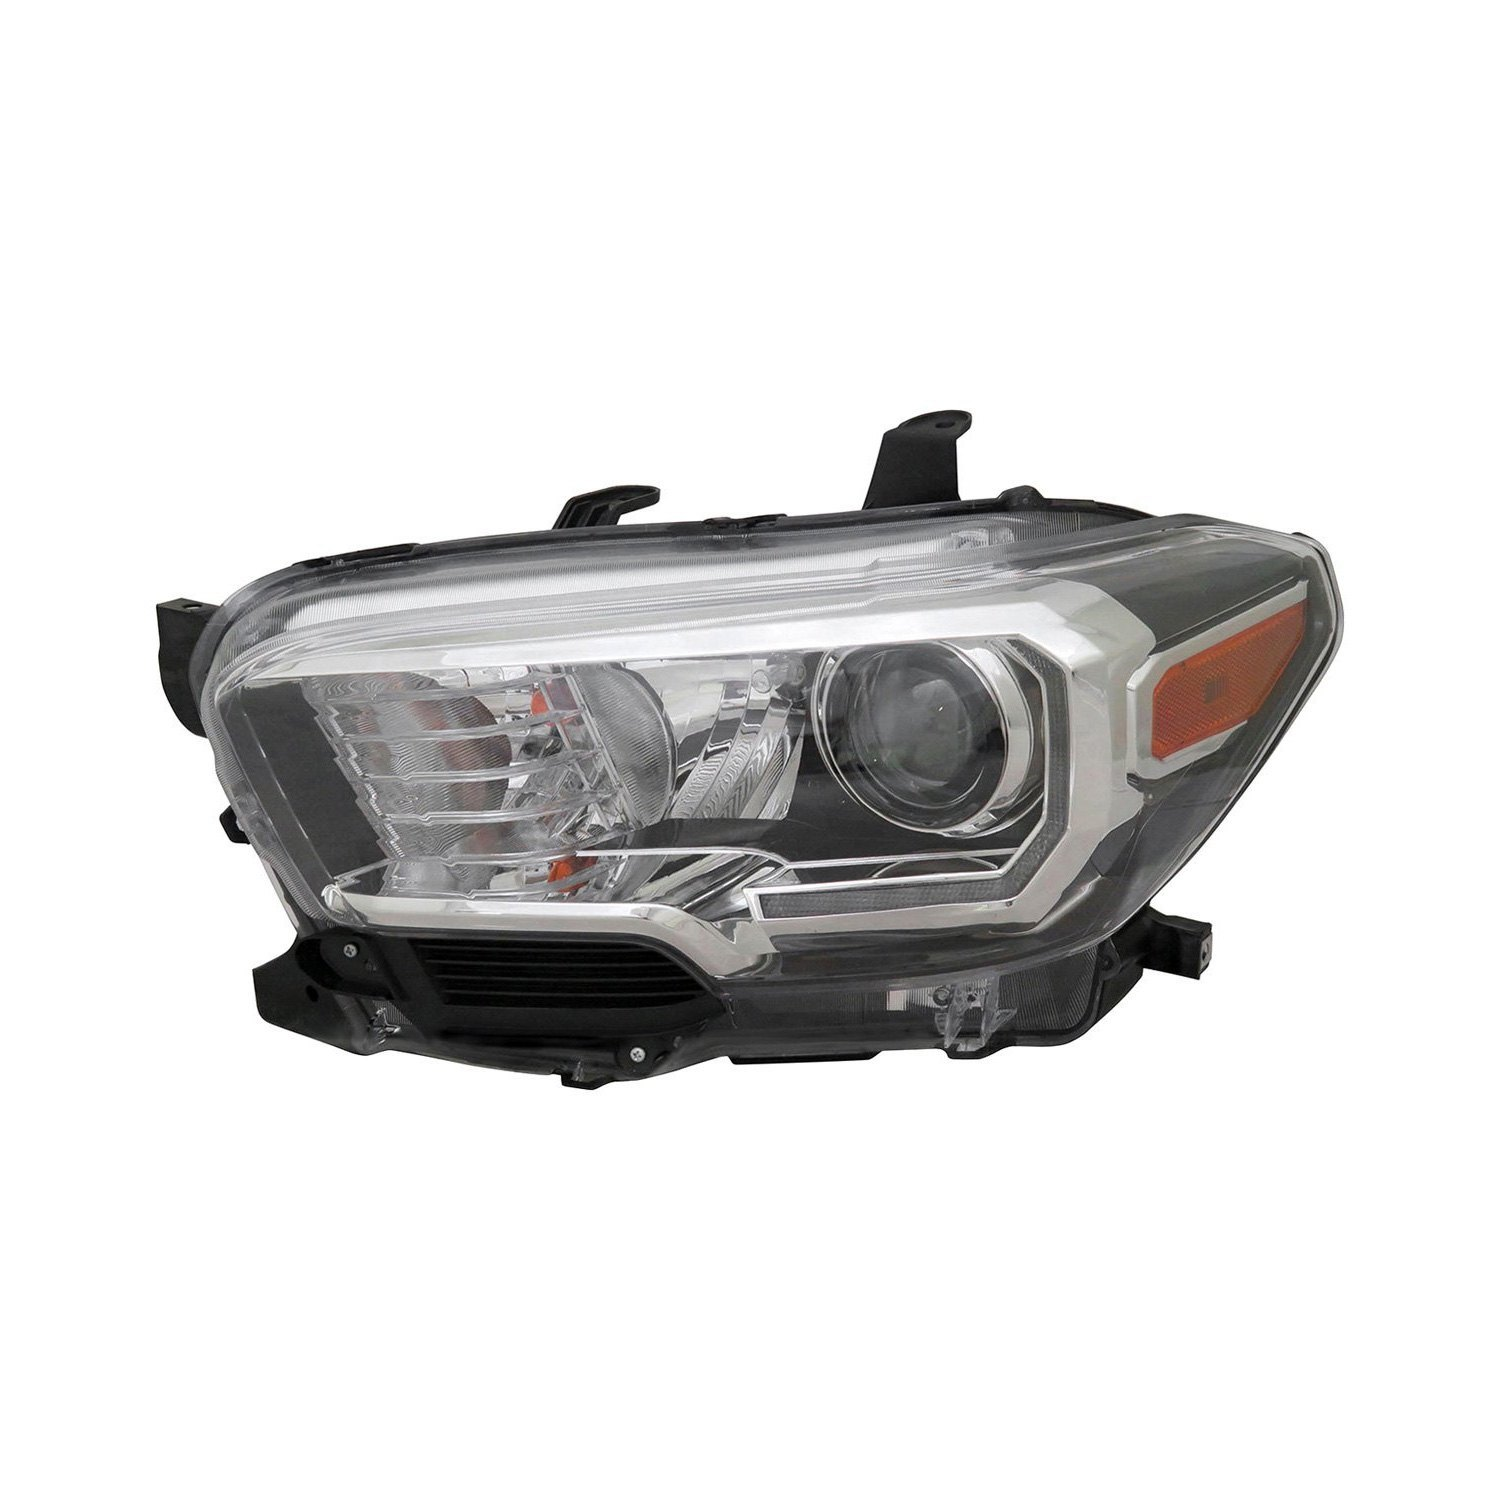 tyc toyota tacoma 2016 replacement headlight. Black Bedroom Furniture Sets. Home Design Ideas